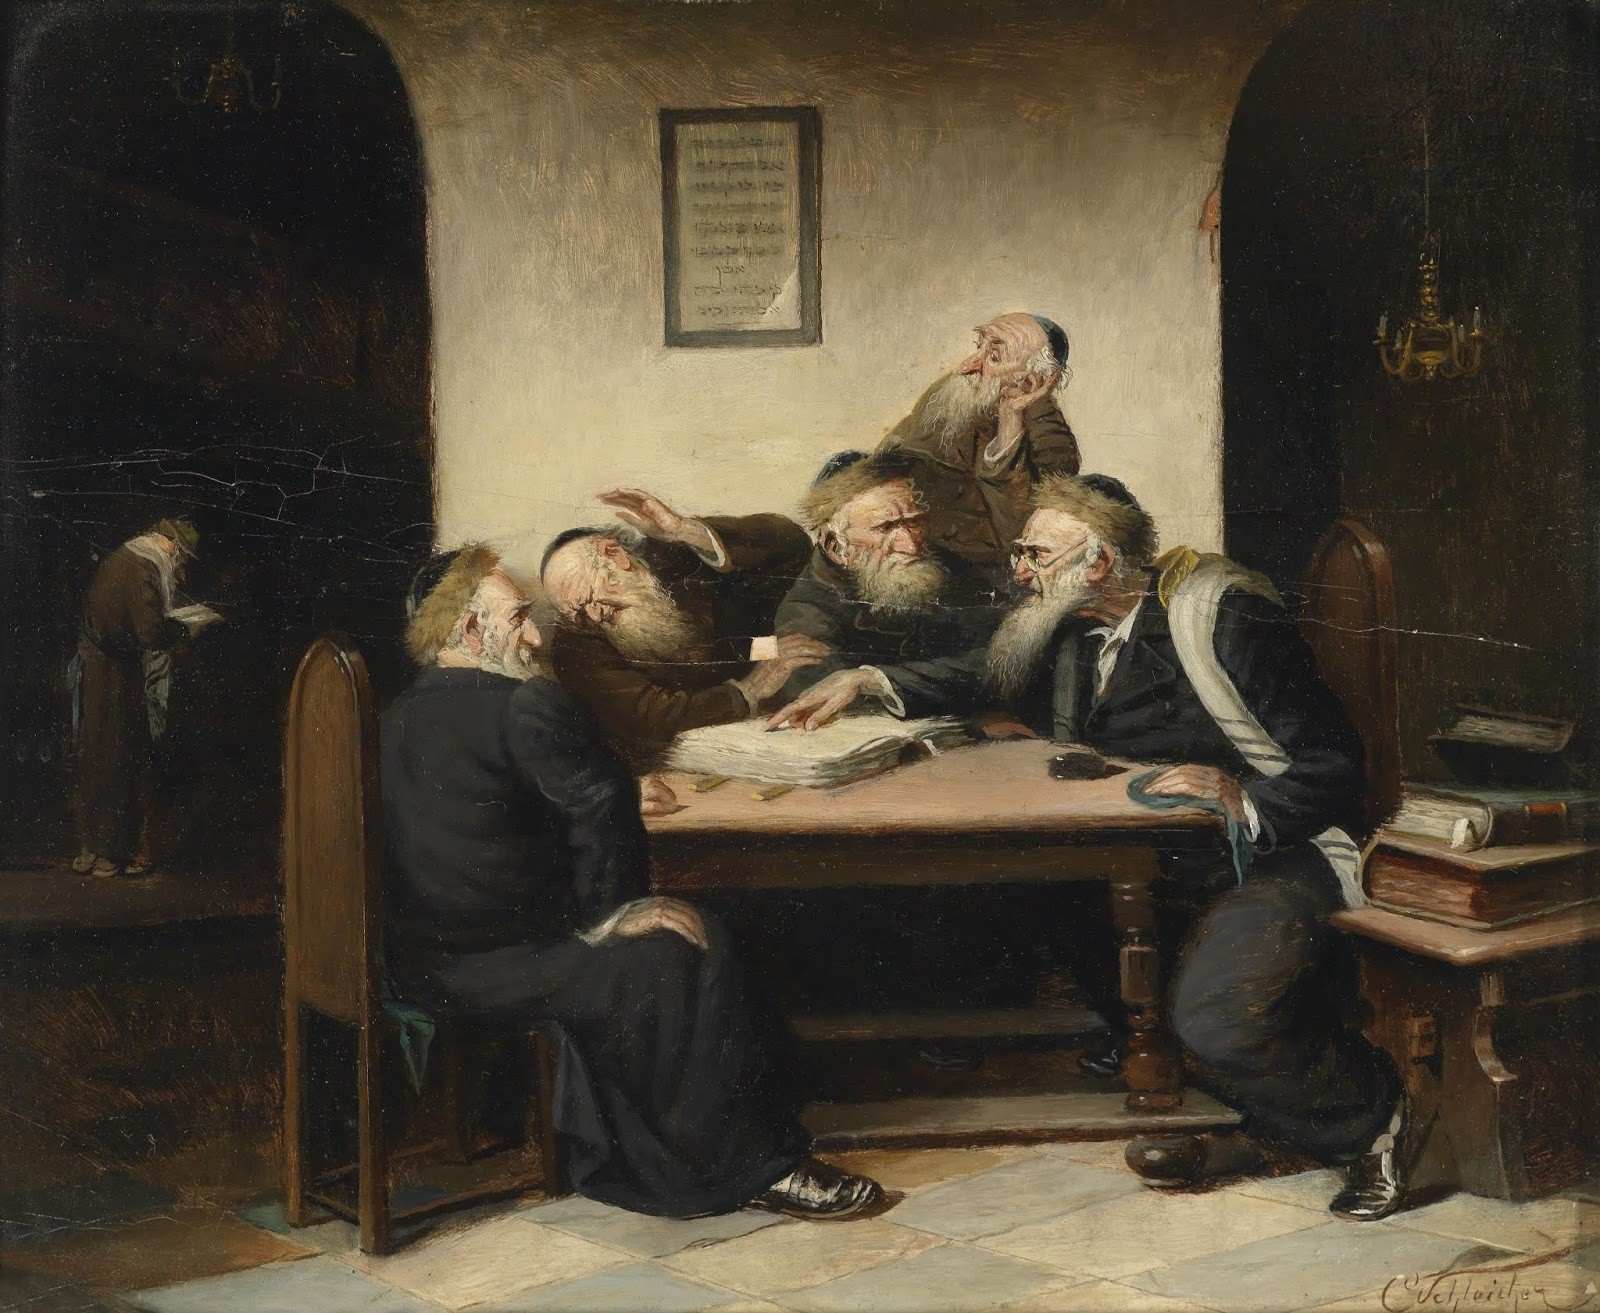 Eine Streitfrage aus dem Talmud (A Dispute over the Talmud), by Carl Schleicher (1825-1903), c. 1859.